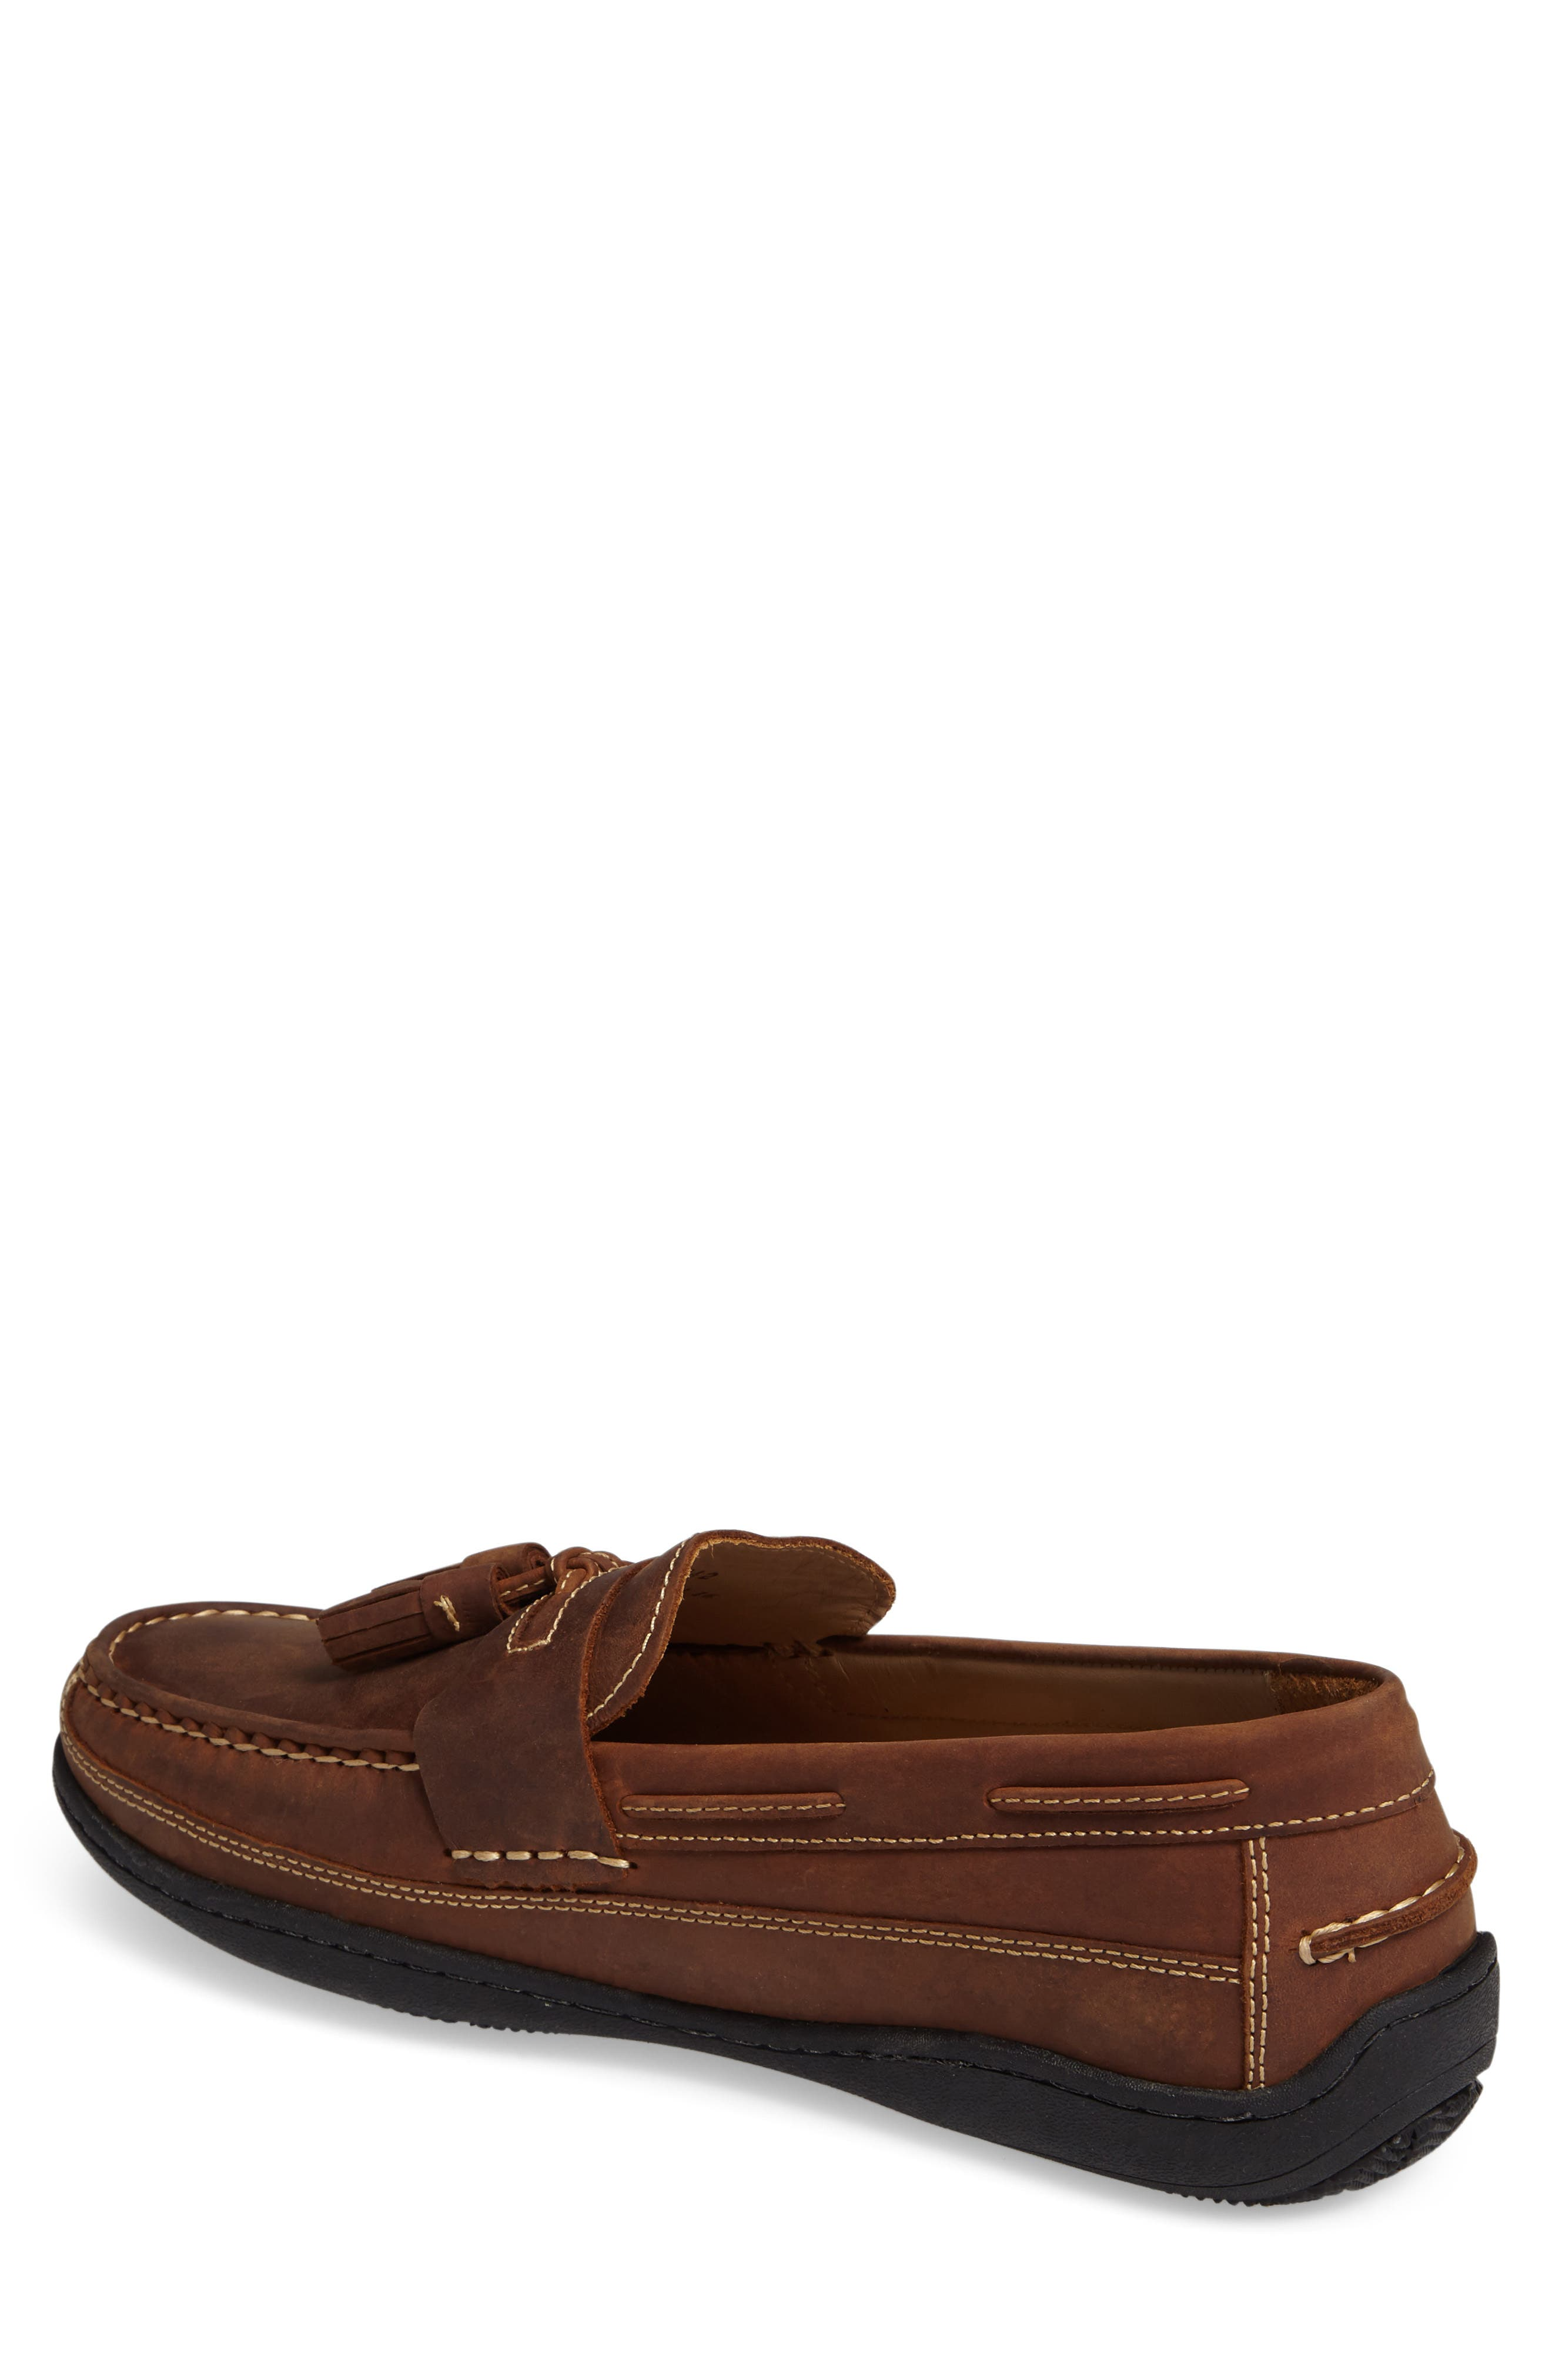 Fowler Tasseled Loafer,                             Alternate thumbnail 2, color,                             TAN LEATHER